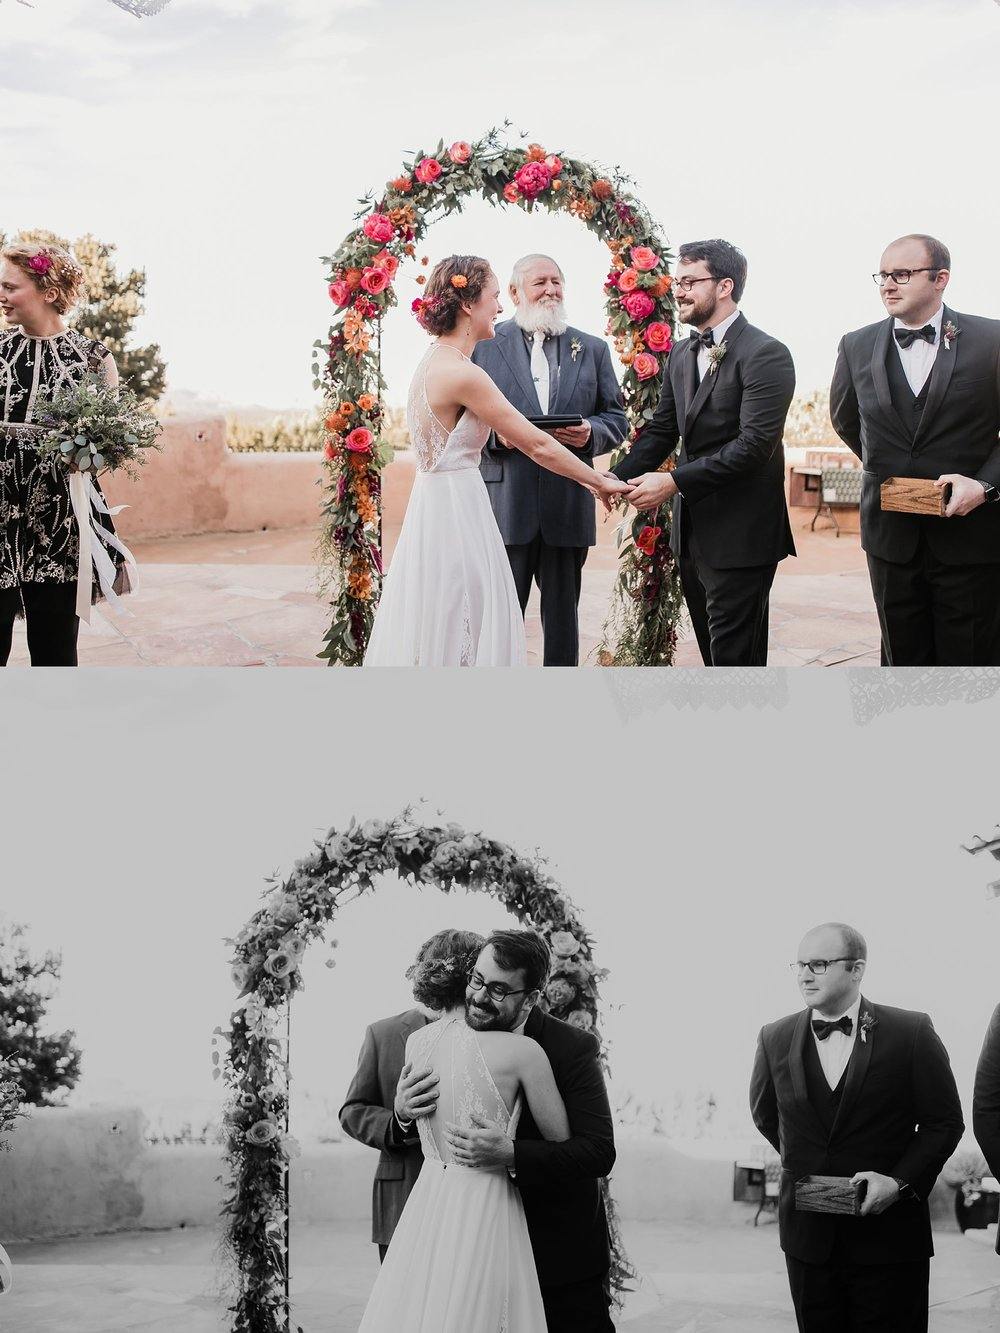 Alicia+lucia+photography+-+albuquerque+wedding+photographer+-+santa+fe+wedding+photography+-+new+mexico+wedding+photographer+-+new+mexico+wedding+-+engagement+-+santa+fe+wedding+-+hacienda+dona+andrea+-+hacienda+dona+andrea+wedding_0039.jpg